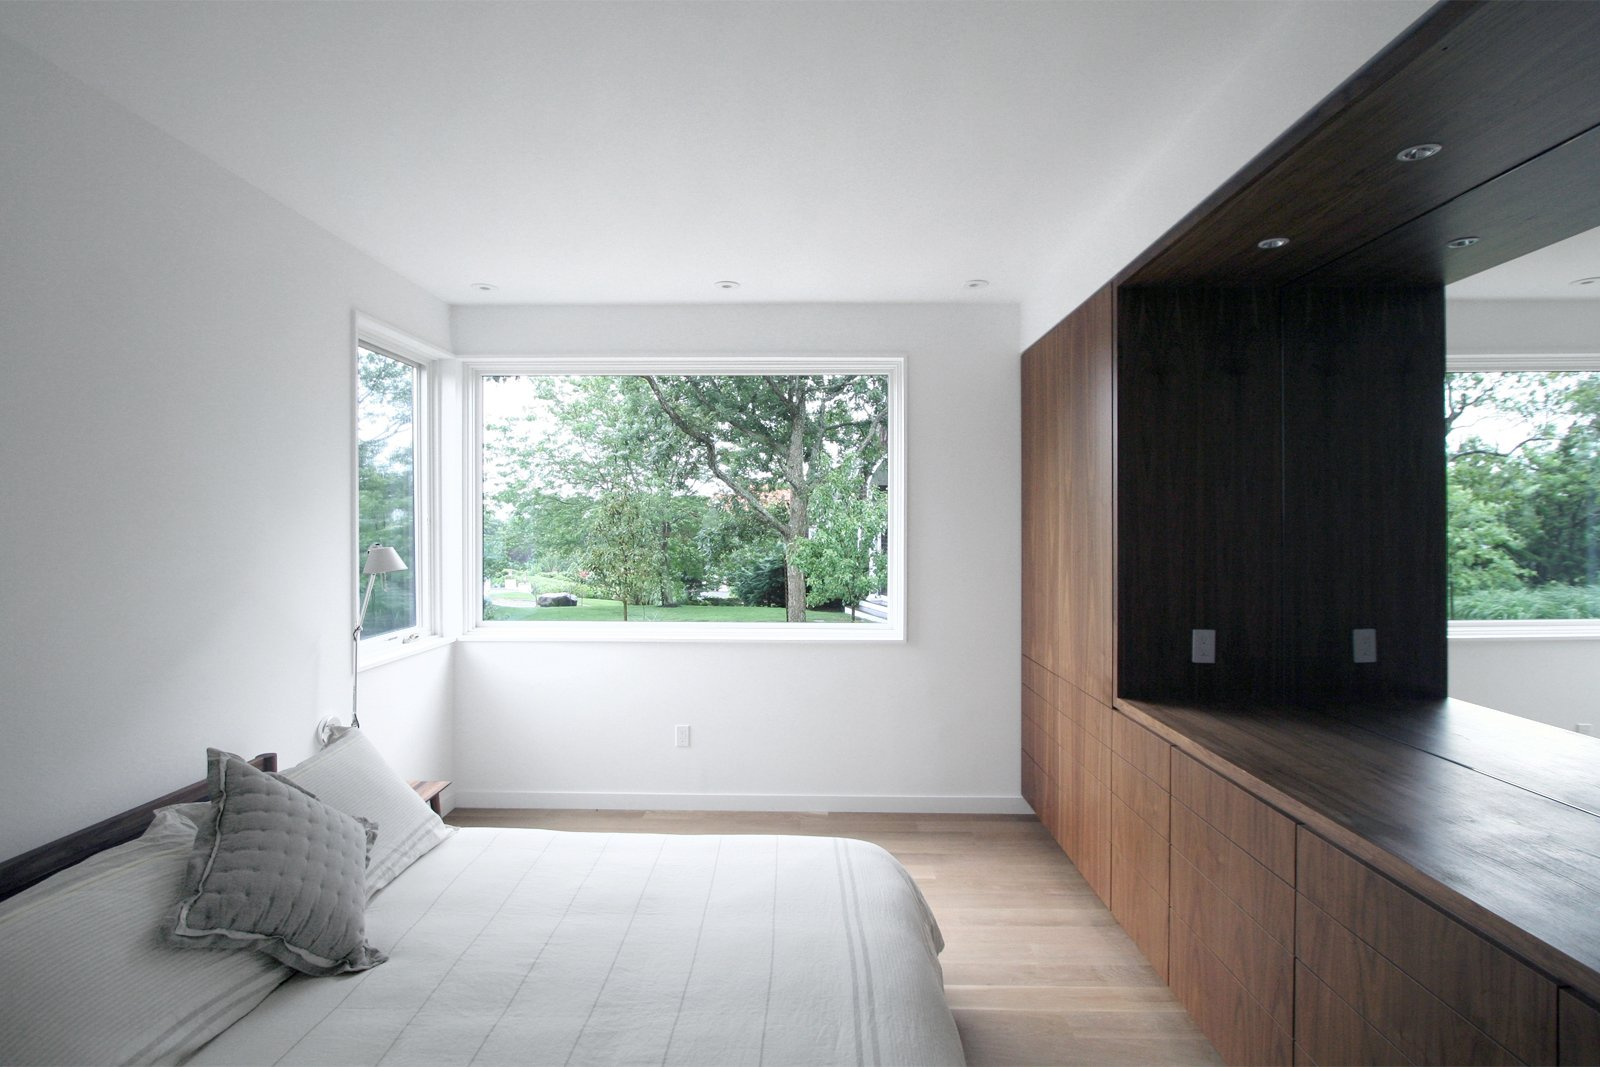 Bedroom, Bed, Dresser, Light Hardwood Floor, Night Stands, Ceiling Lighting, and Wardrobe Bedroom at front of home   North Fork Bluff House by Resolution: 4 Architecture